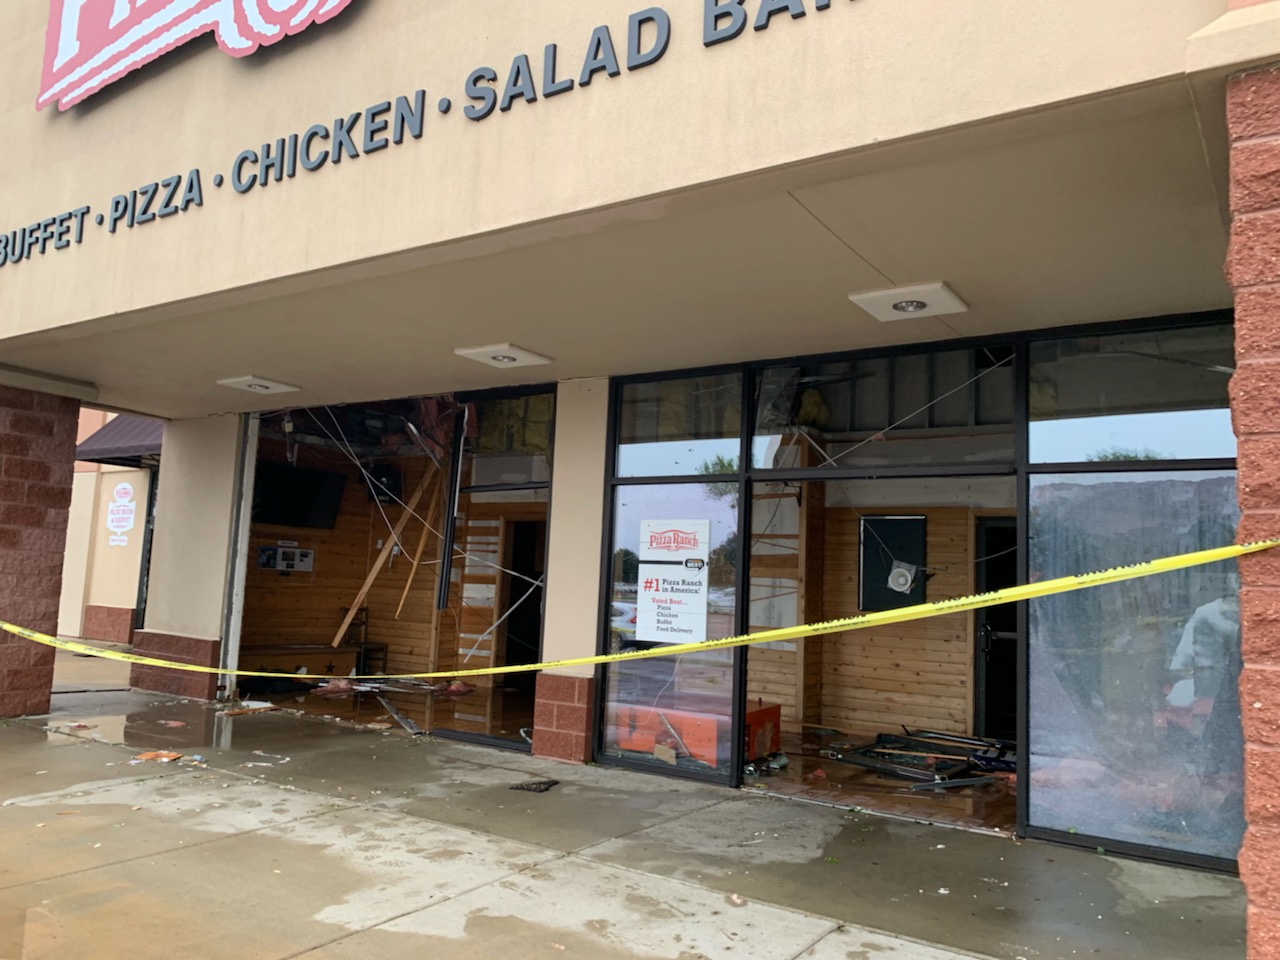 Pizza+Ranch+is+missing+part+of+their+roof+after+Tuesday+night%27s+tornado+and+suffered+damage+on+the+inside+as+well.